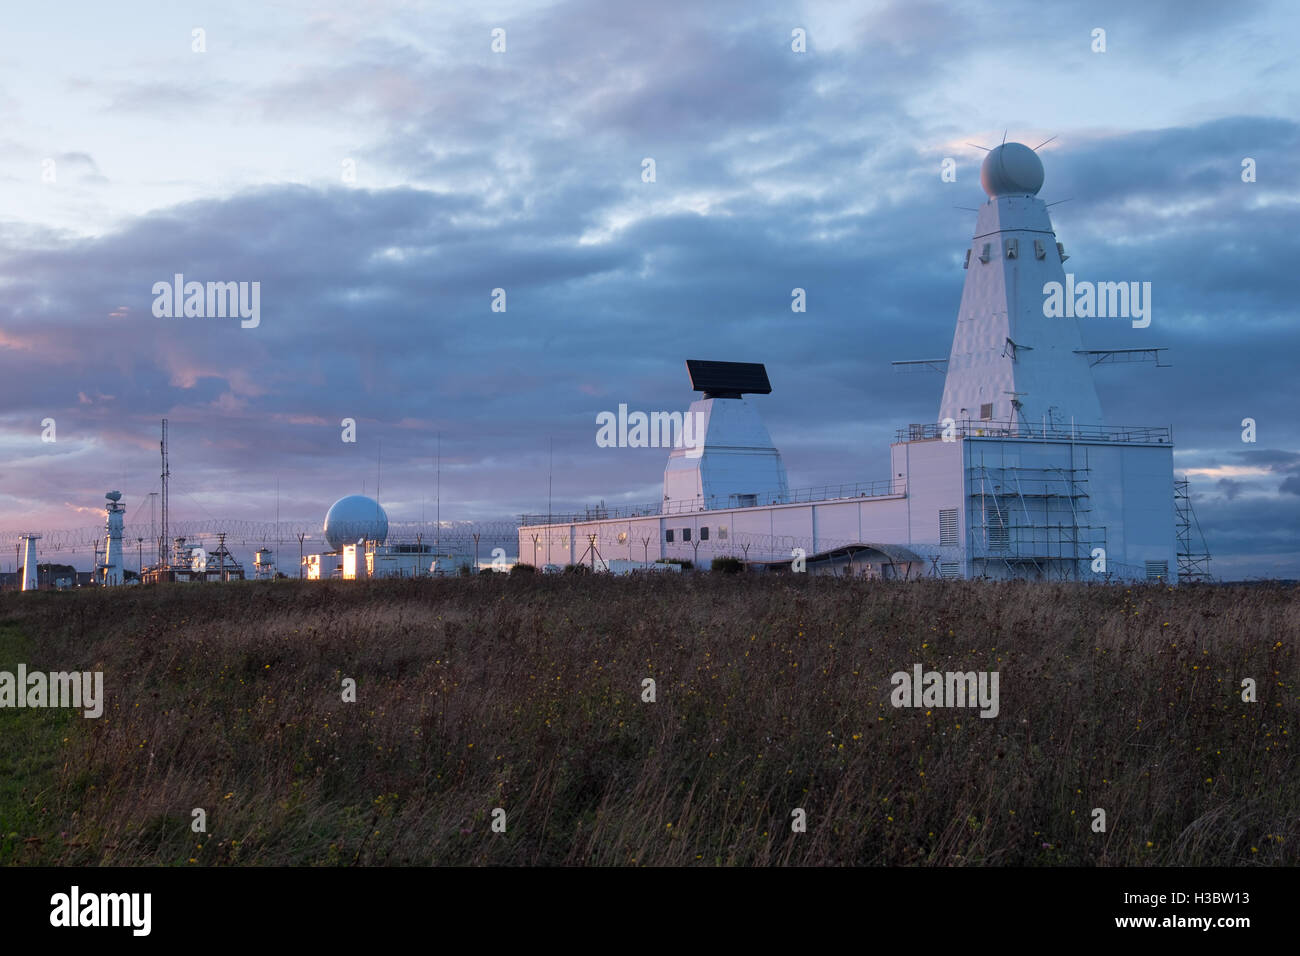 The Qinetiq site at Portsdown Technology Park in Portsmouth - Stock Image